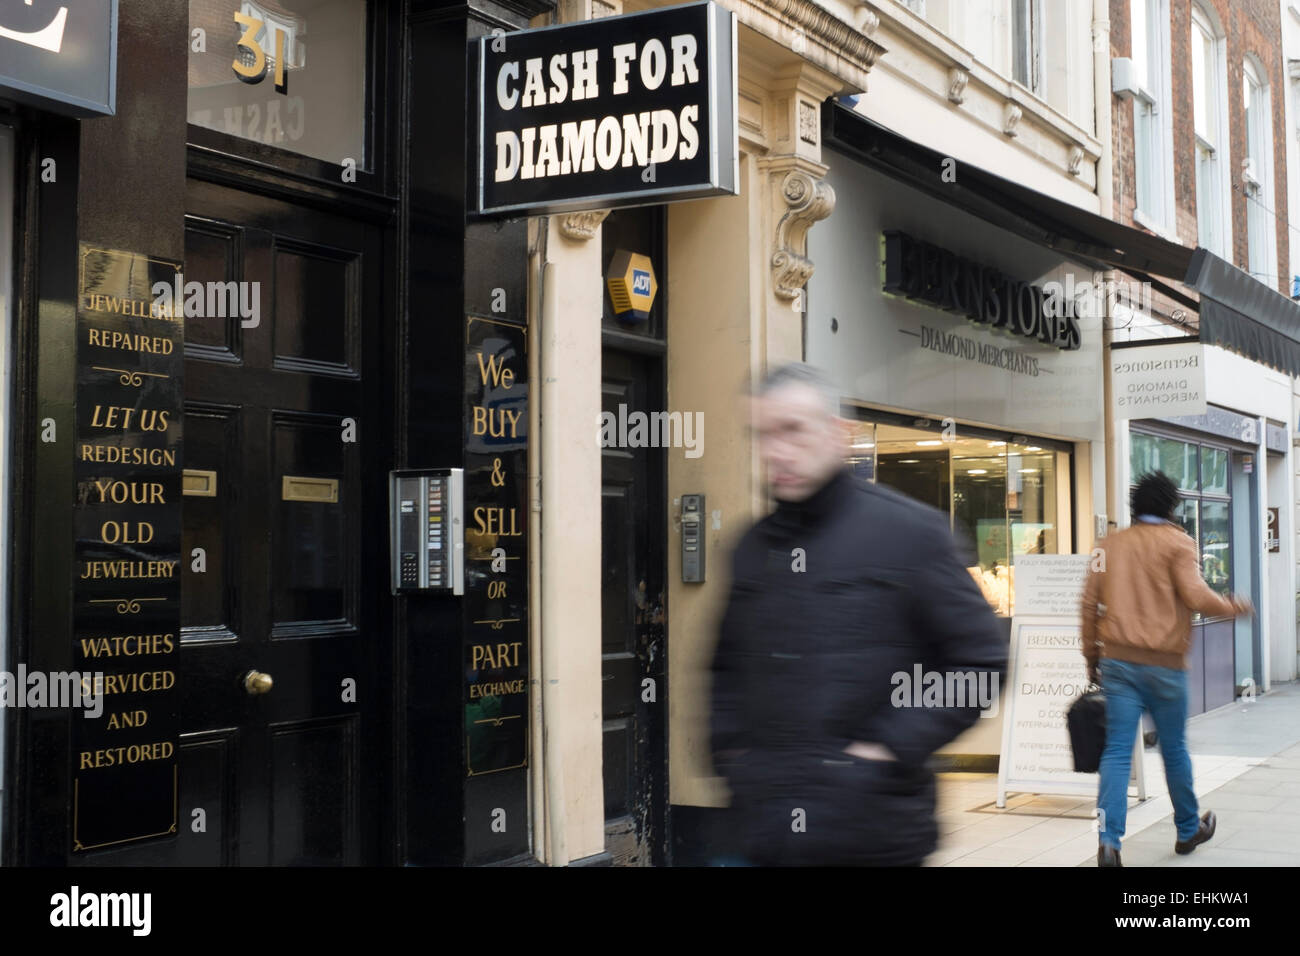 Hatton Garden Jewellery Shop Frontage With Cash For Diamonds Sign